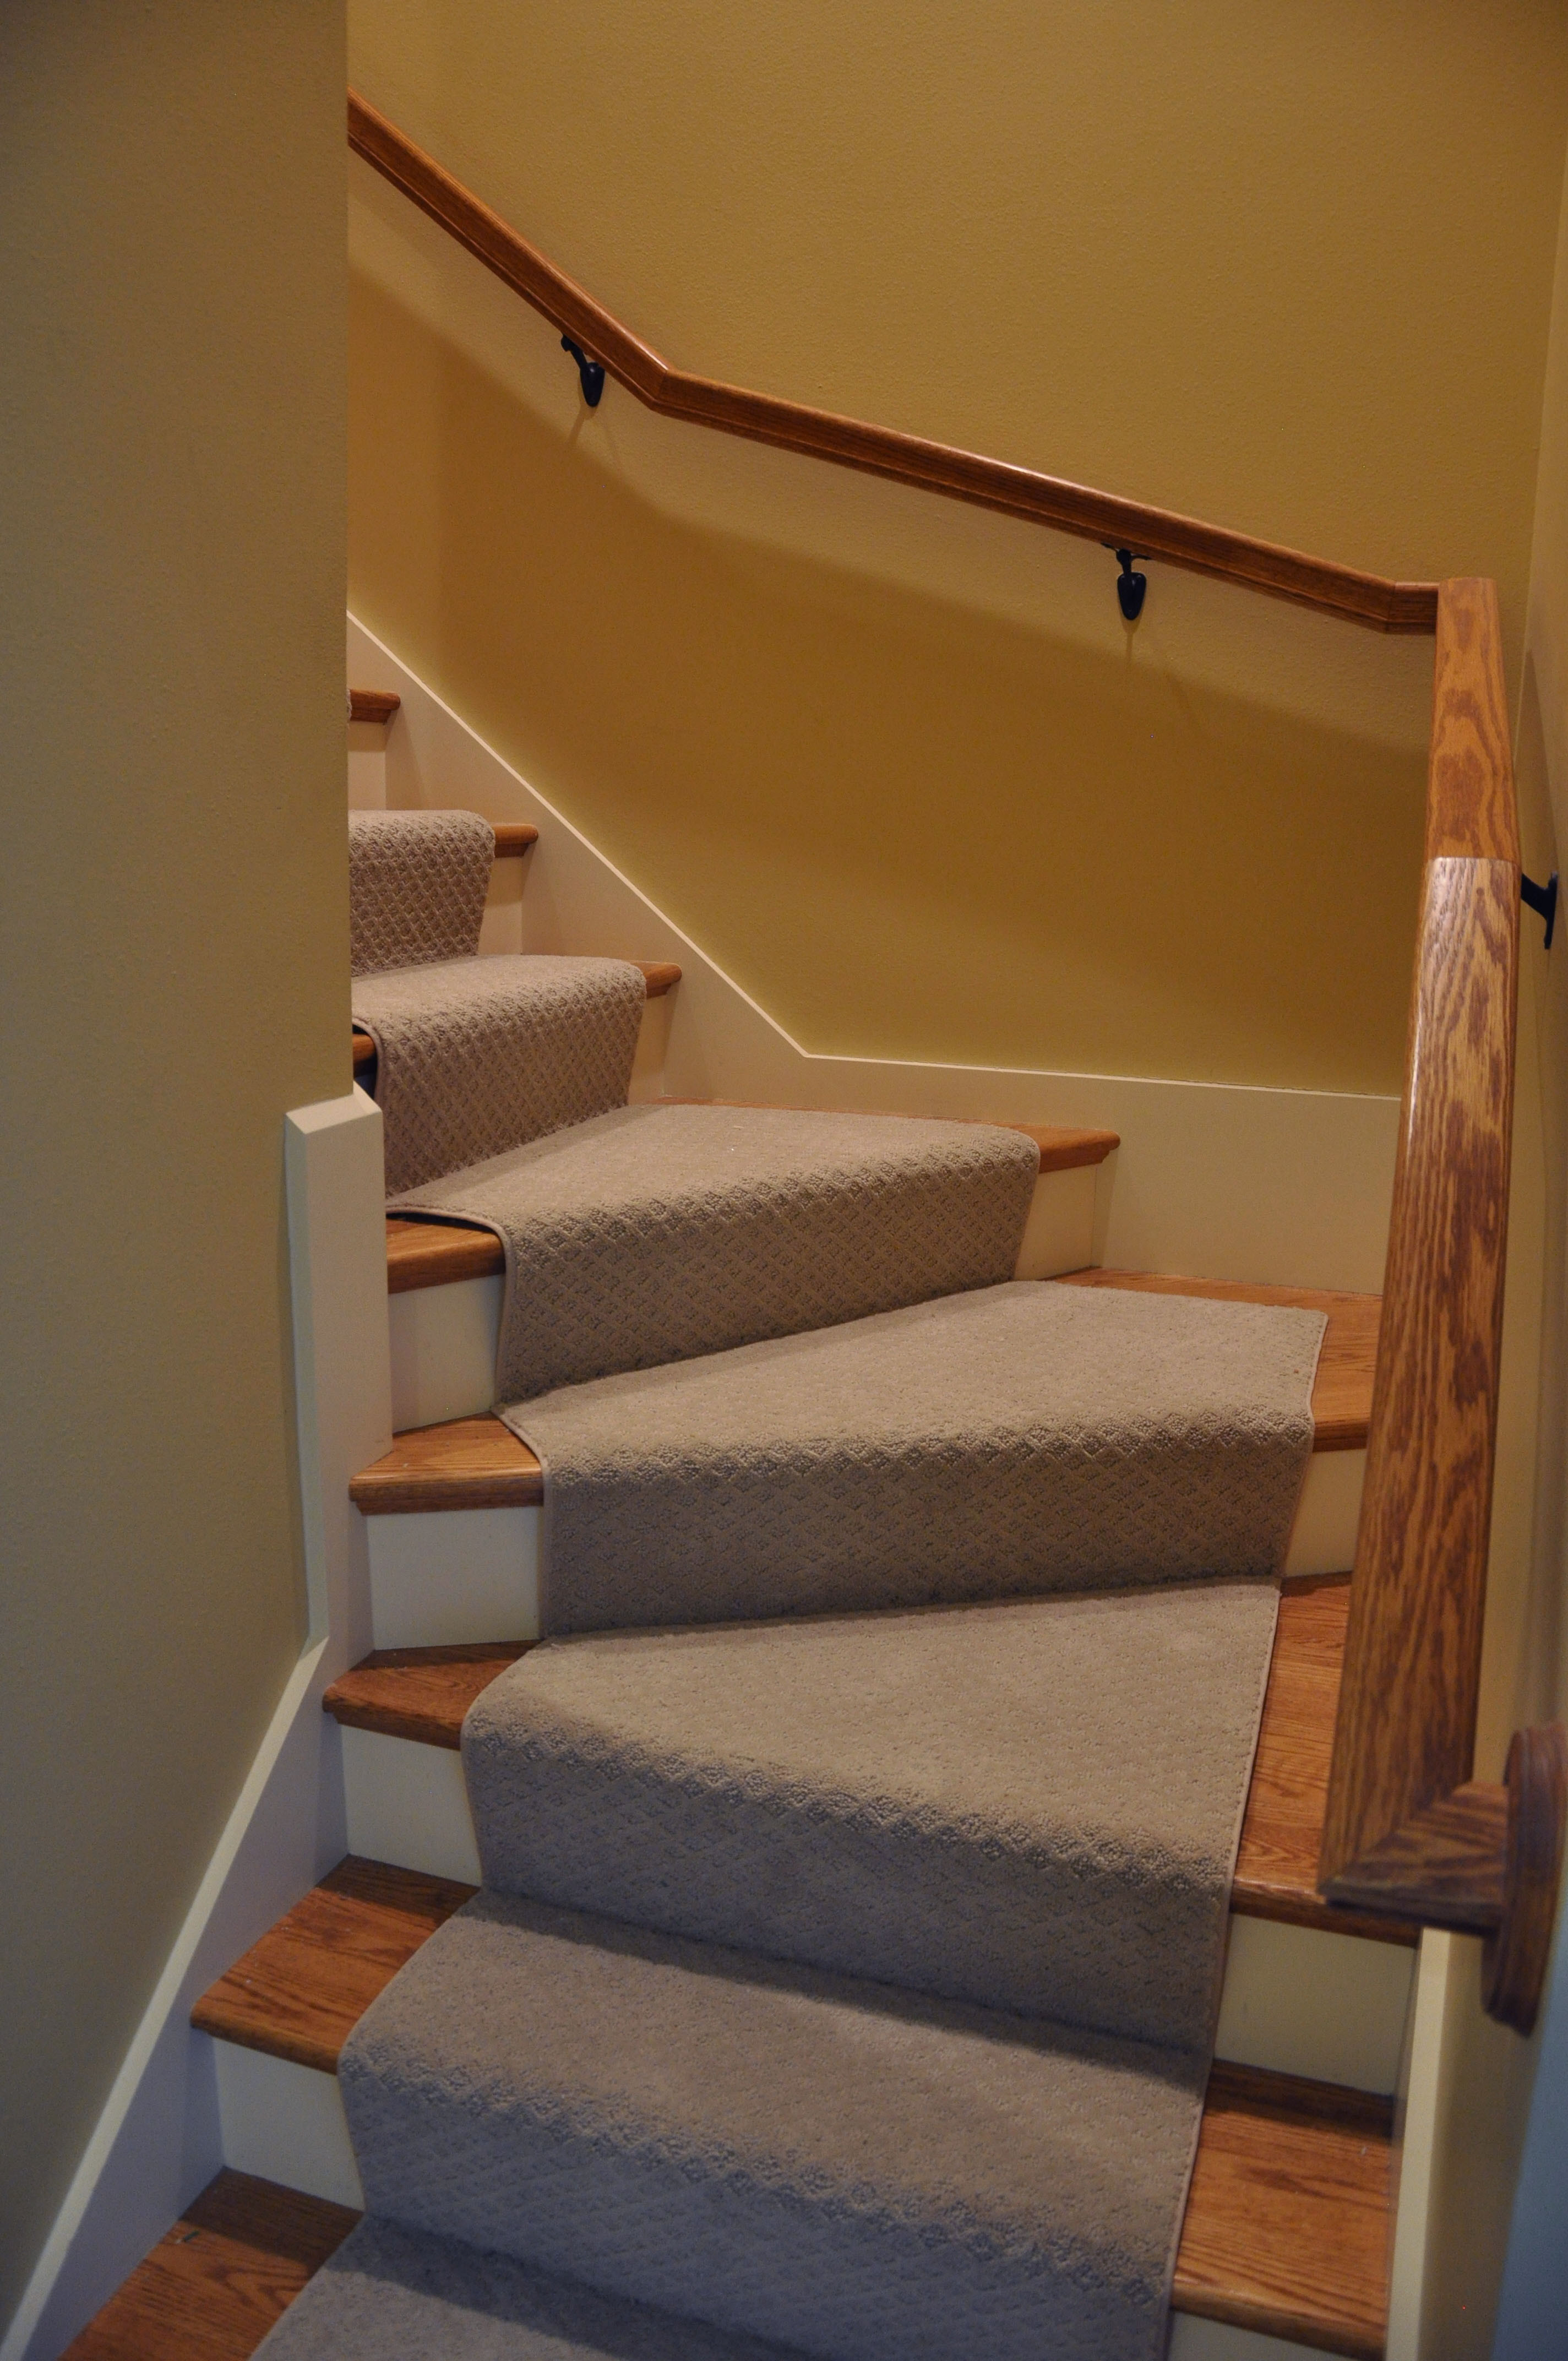 Hardwood Floor Refinishing Raleigh Of Hardwood Stair Treads Staircasing Installation Milwaukee Wi with Regard to Click Image to Enlarge